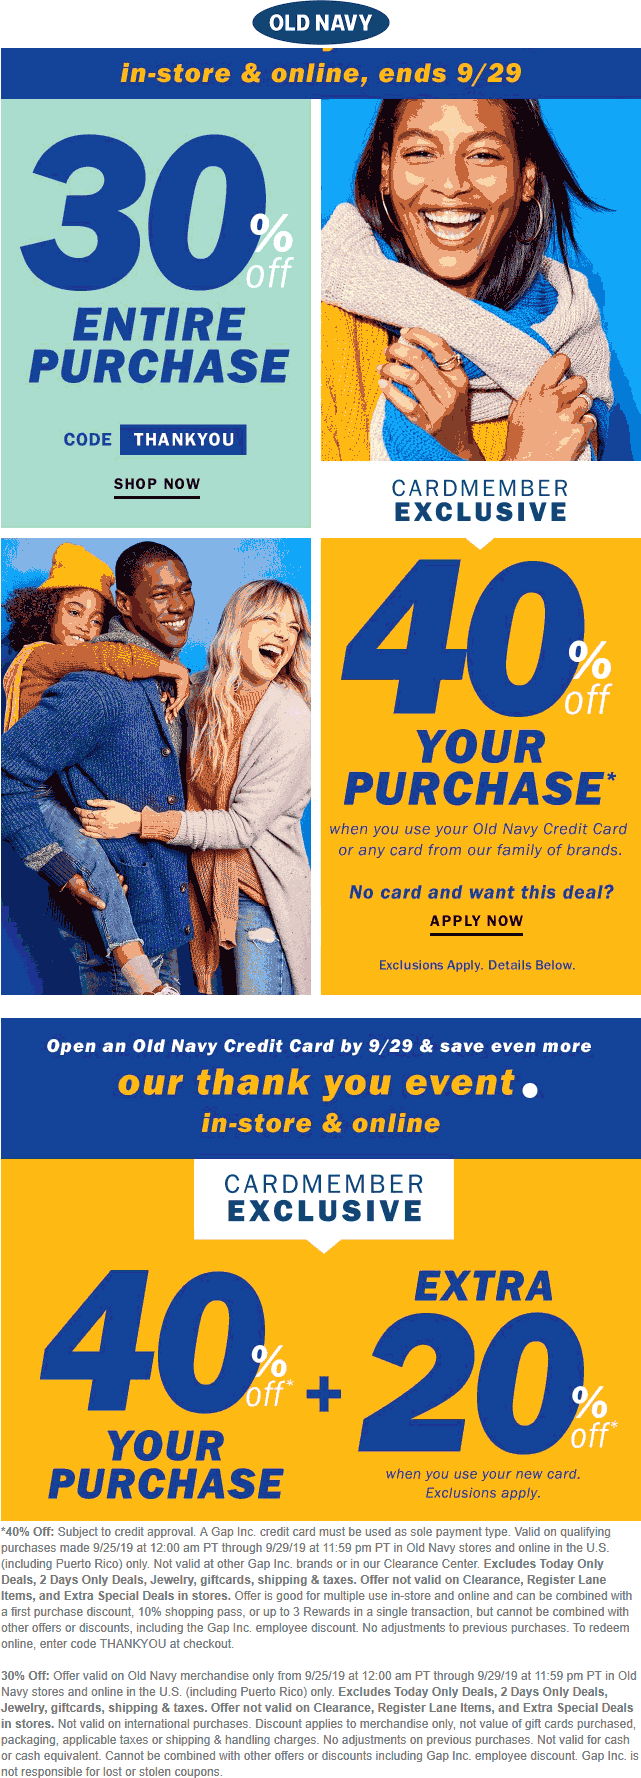 Old Navy Coupon February 2020 30% off everything at Old Navy, or online via promo code THANKYOU